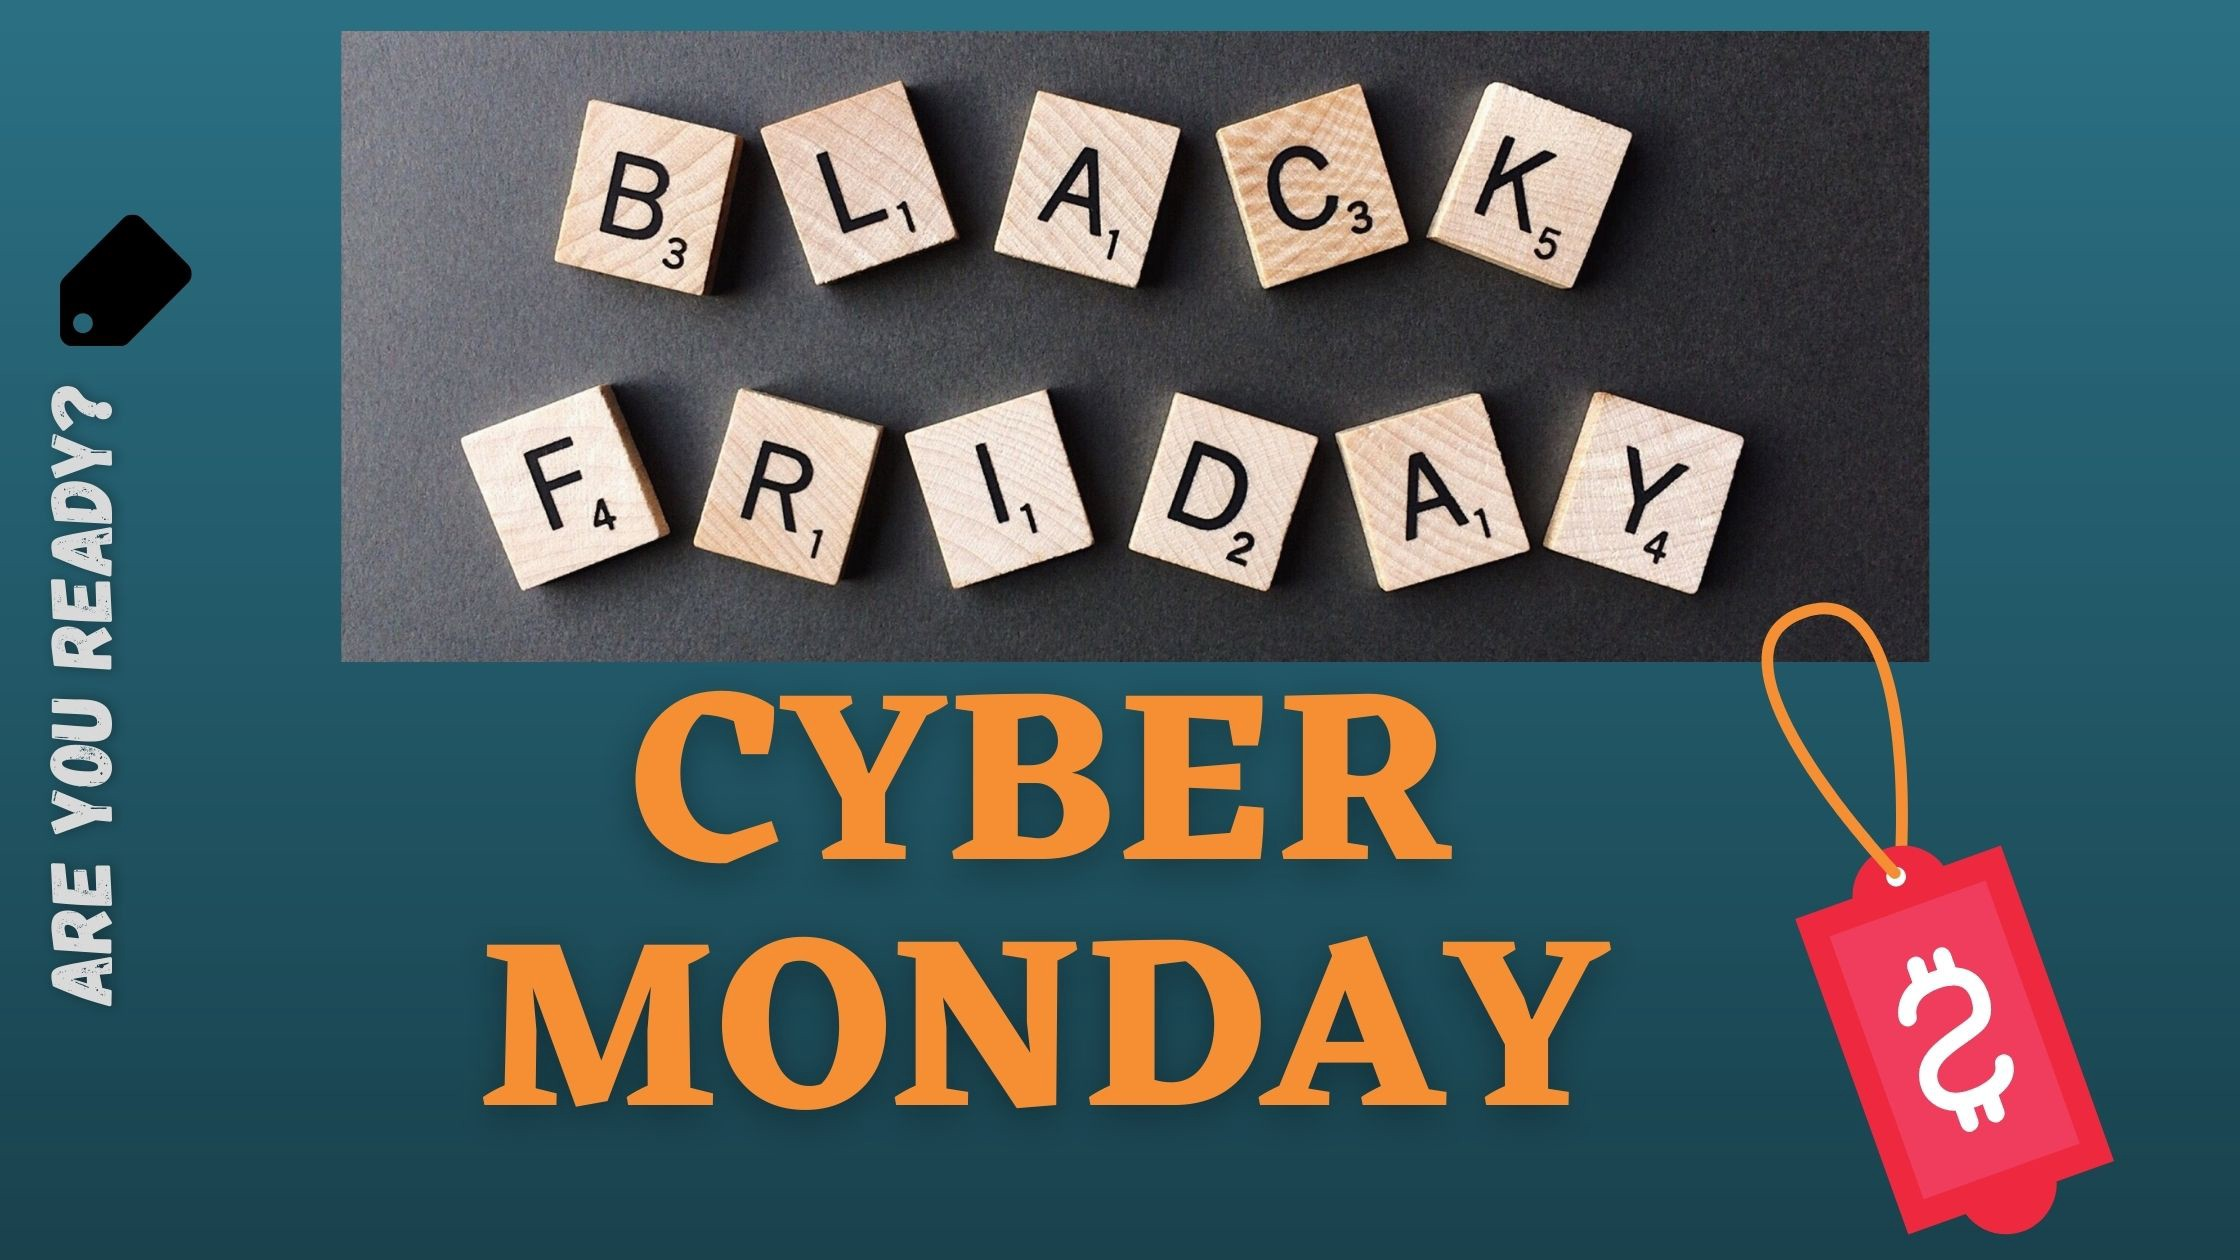 Top 5 Marketing Strategies For Black Friday Cyber Monday 2020 By Nazia Perveen Commerce Trails Sep 2020 Medium